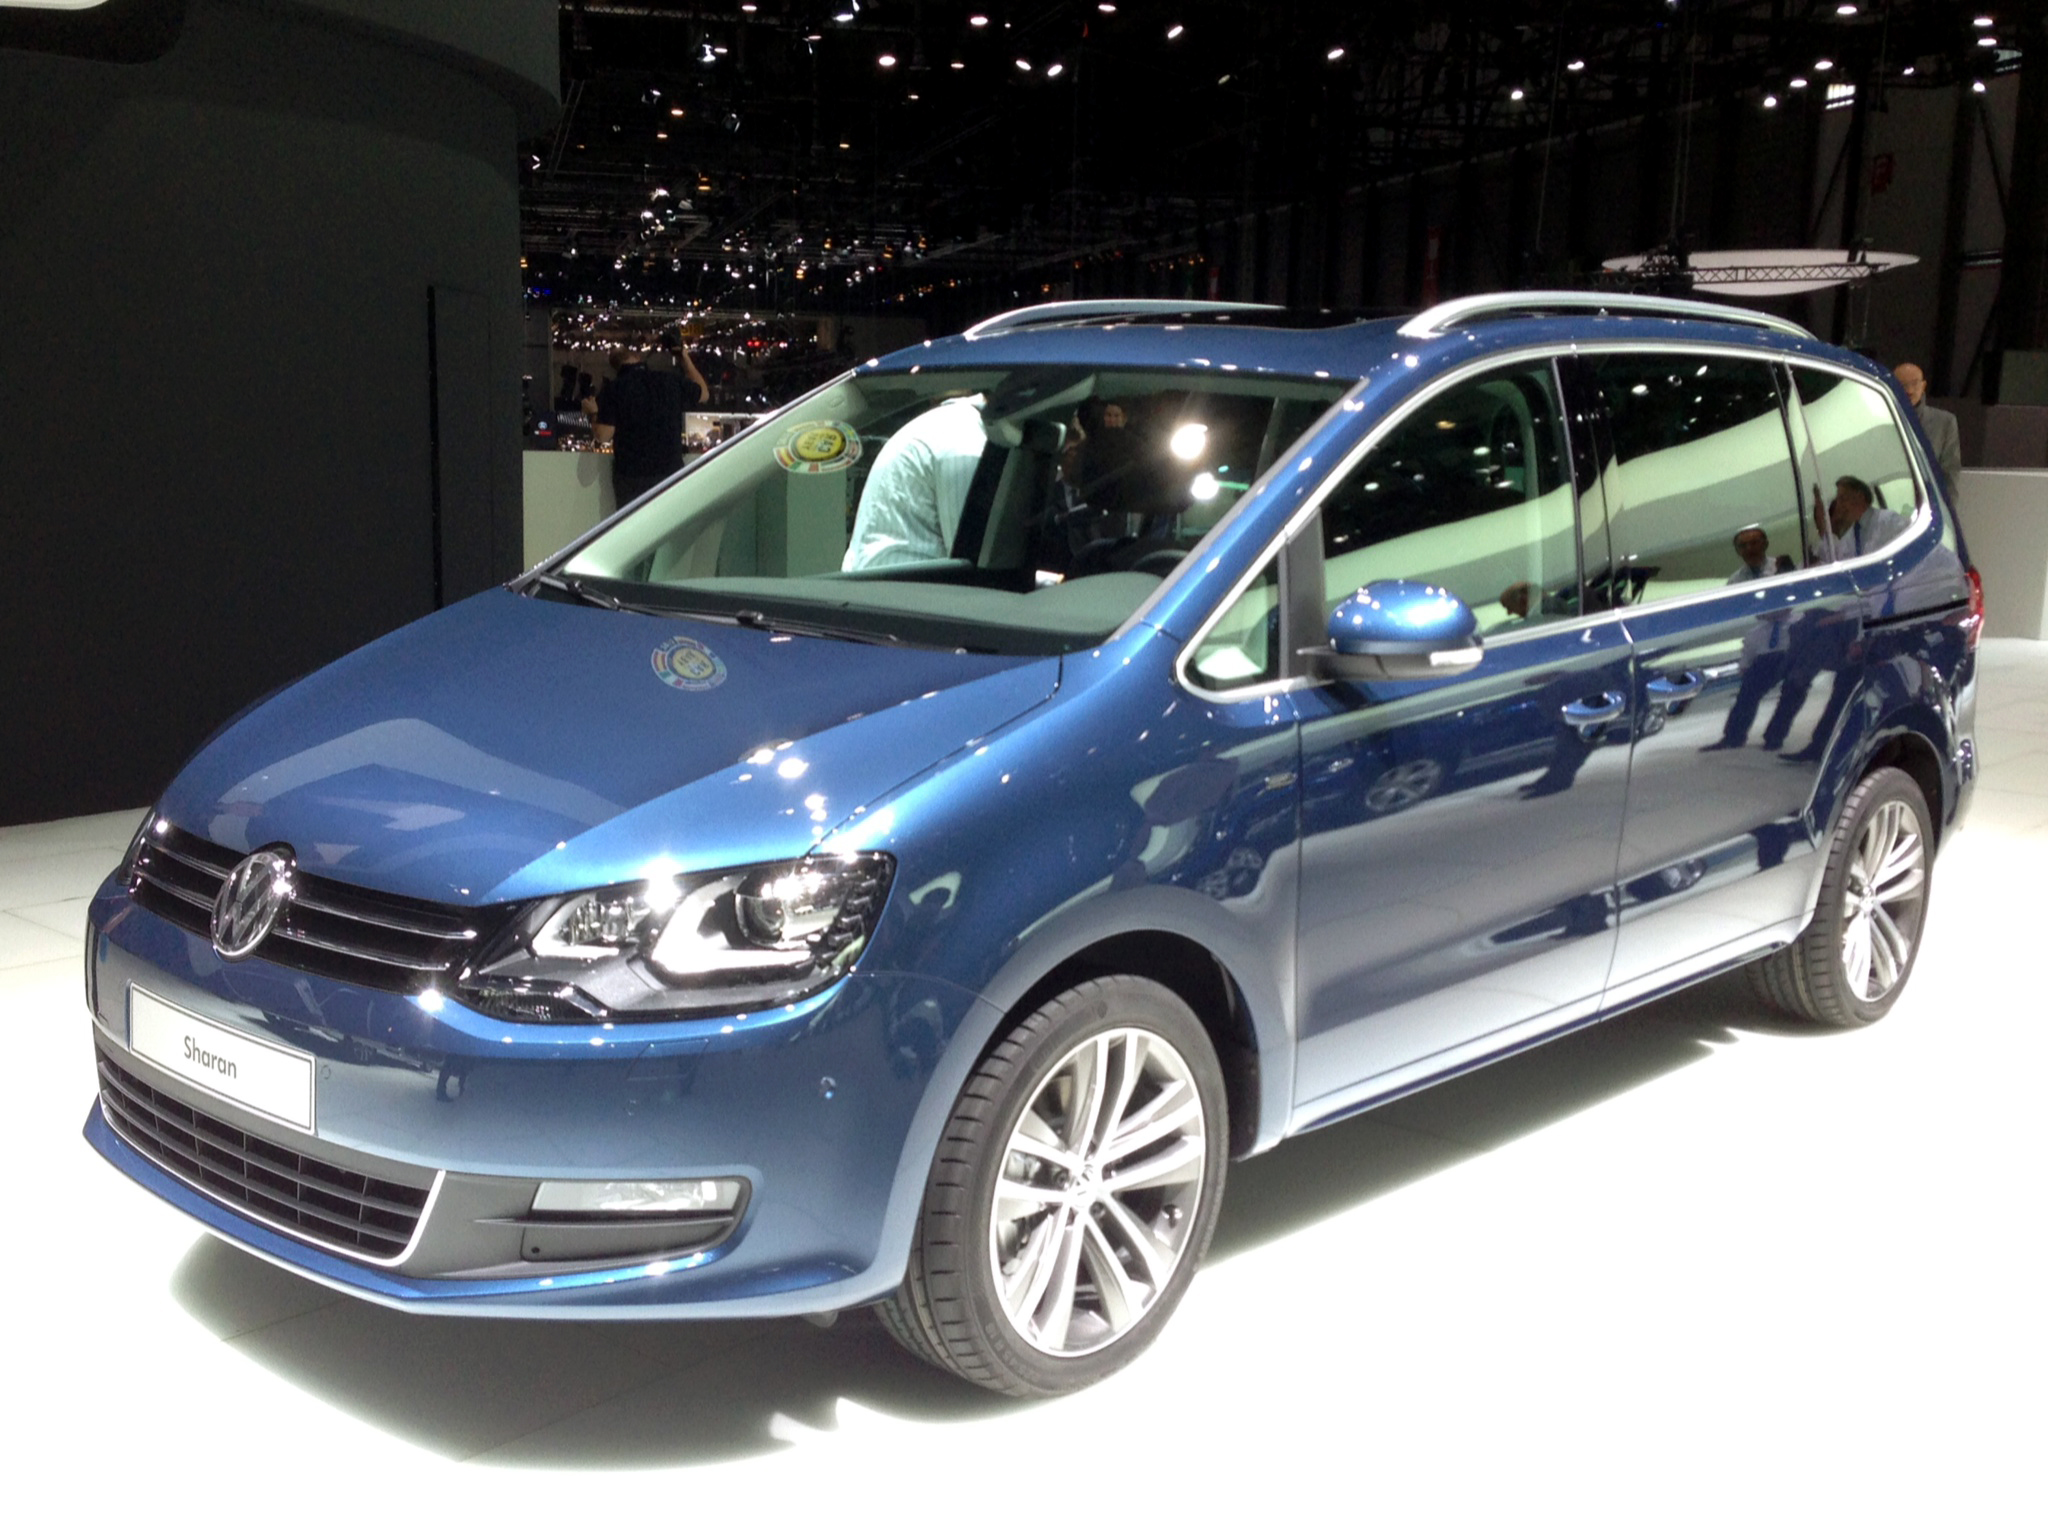 volkswagen-sharan-2015-wallpaper-1